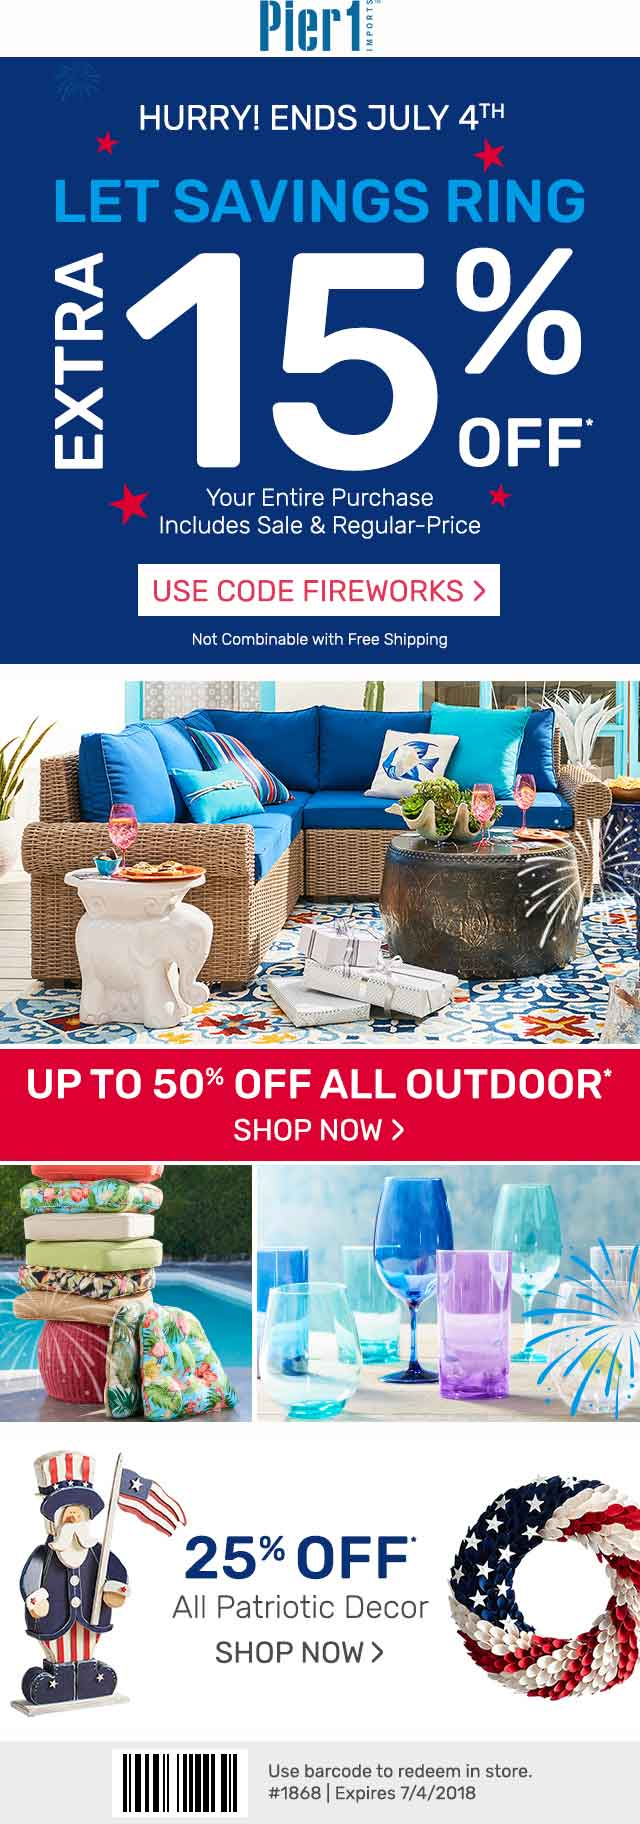 Pier1.com Promo Coupon 15% off everything at Pier 1 Imports, or online via promo code FIREWORKS